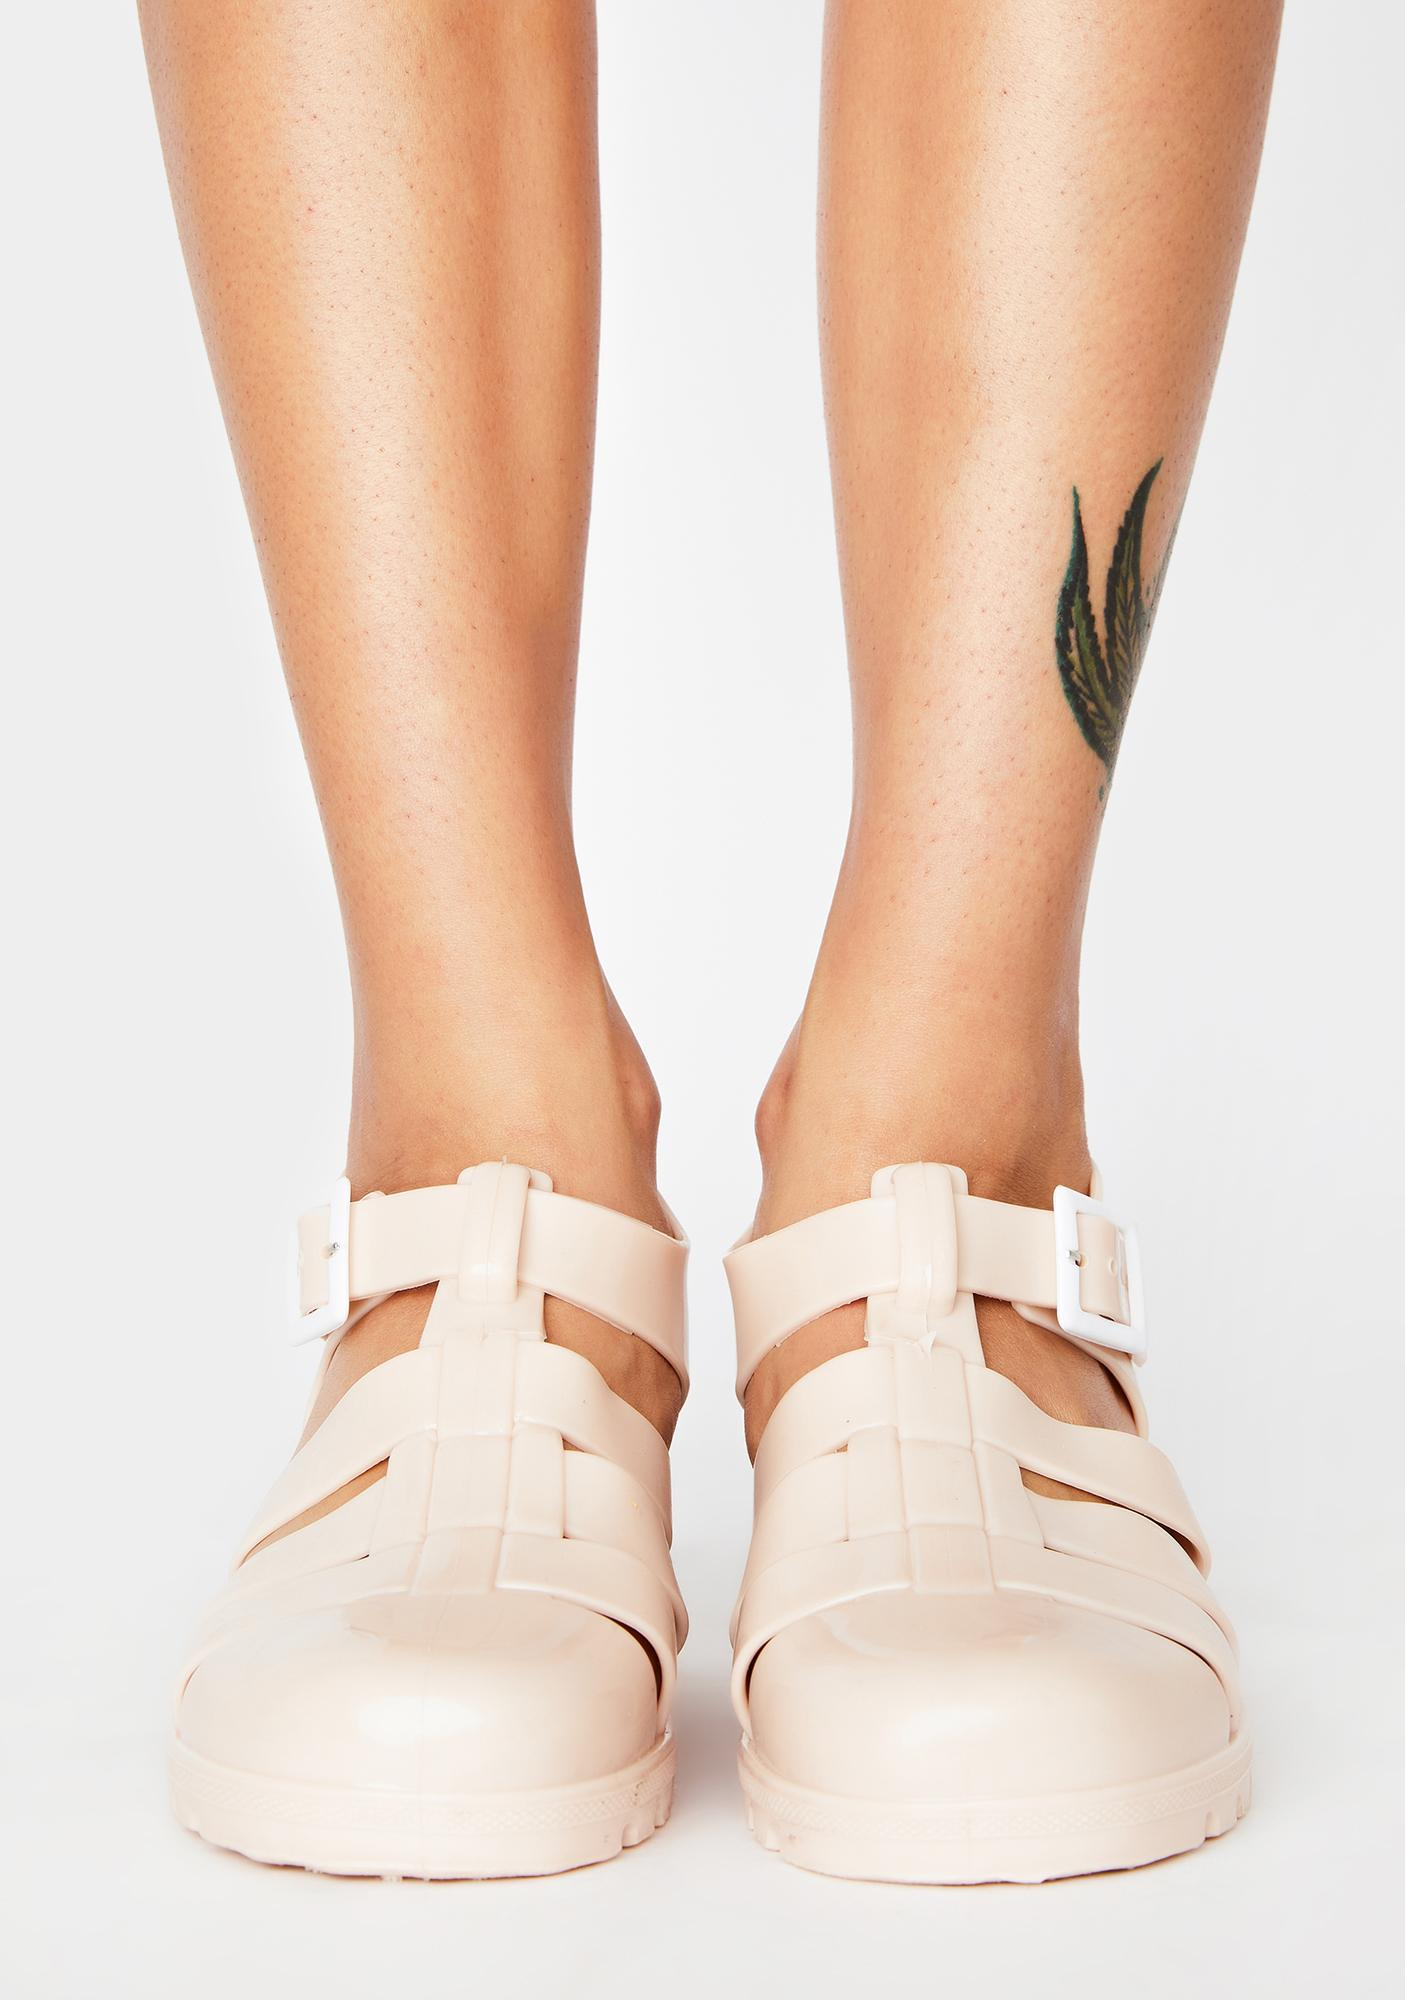 Java Feel This Moment Jelly Sandals